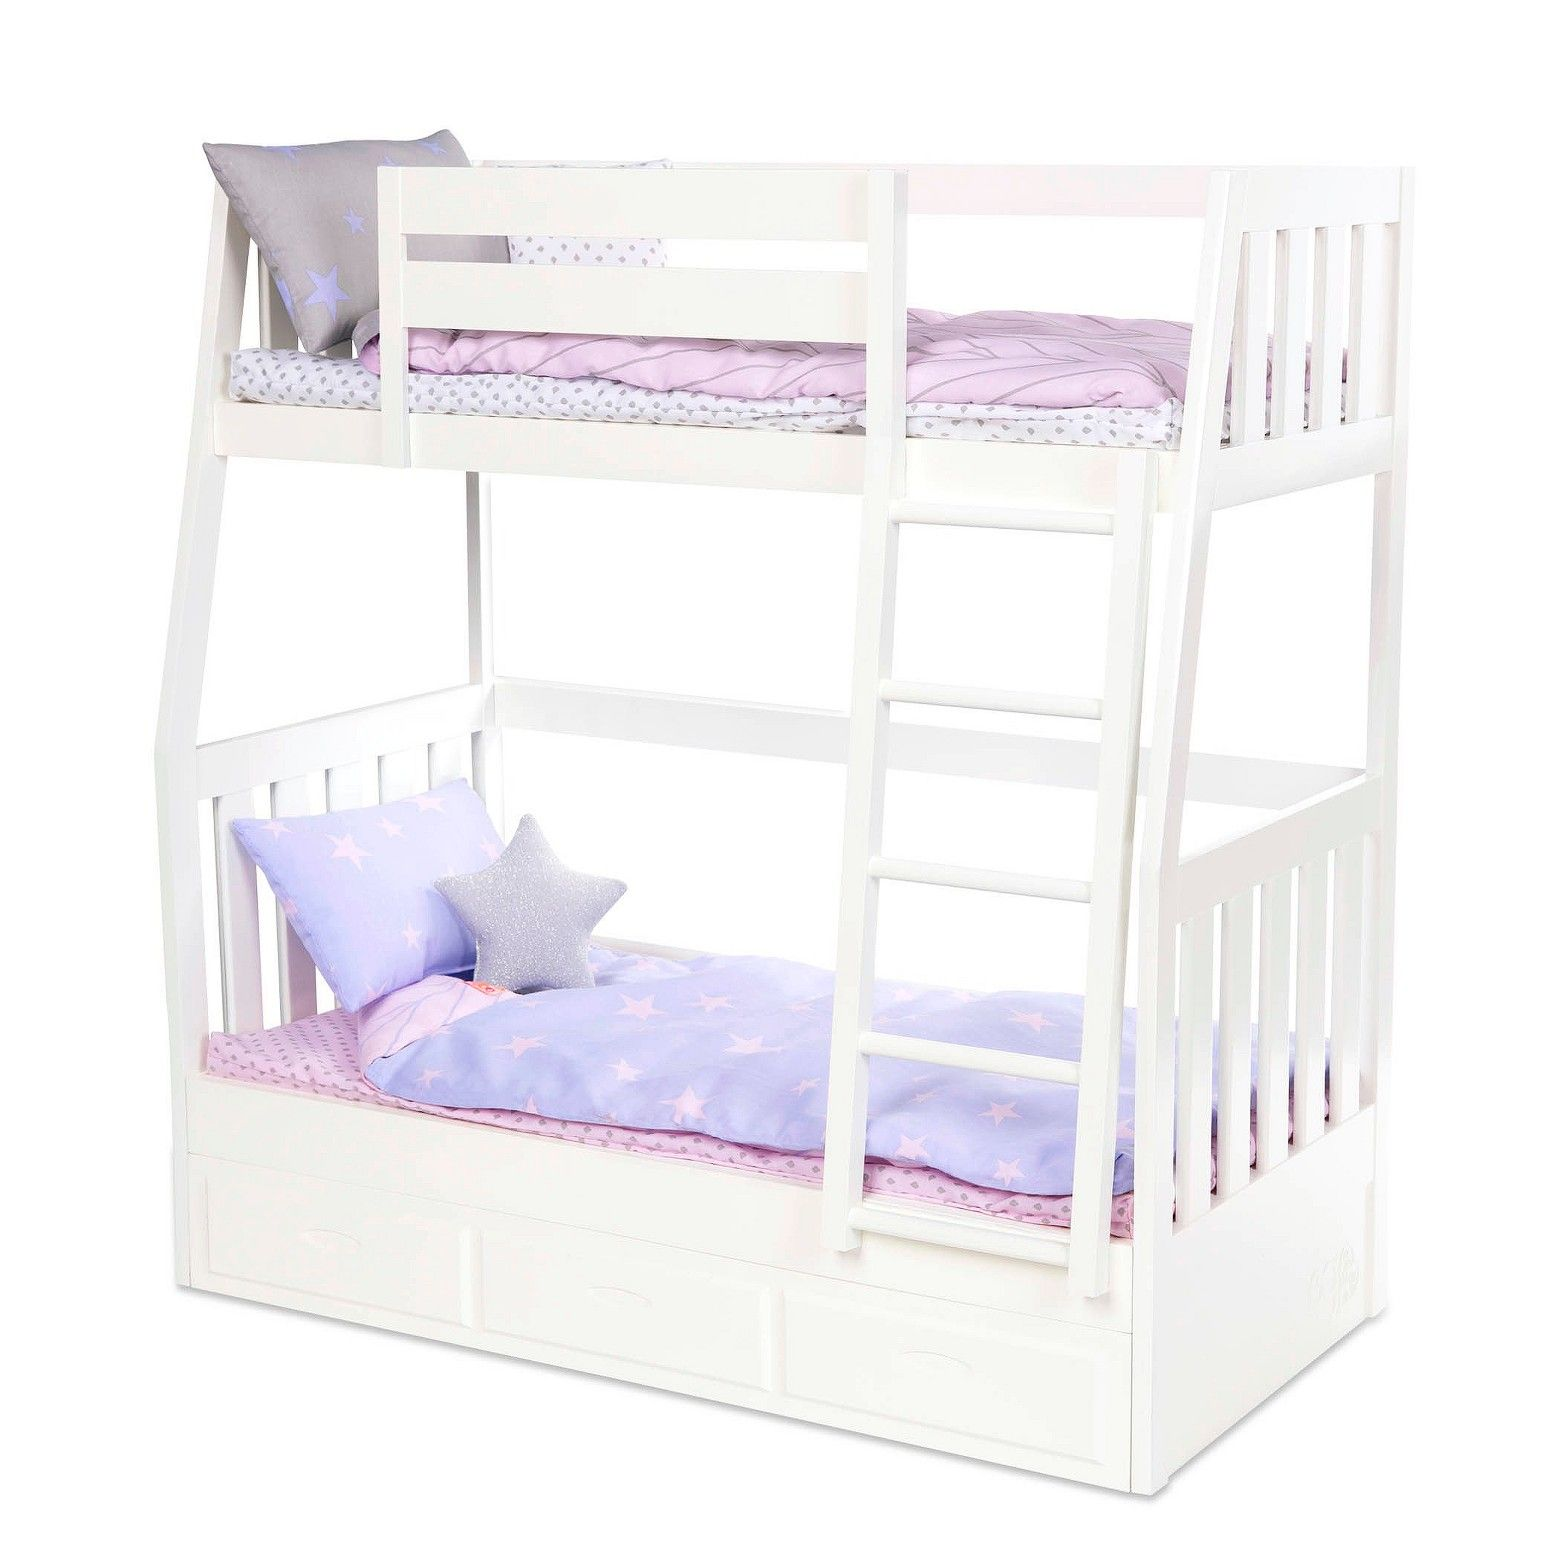 Our Generation Bunk Bed Target Our Generation Pinterest